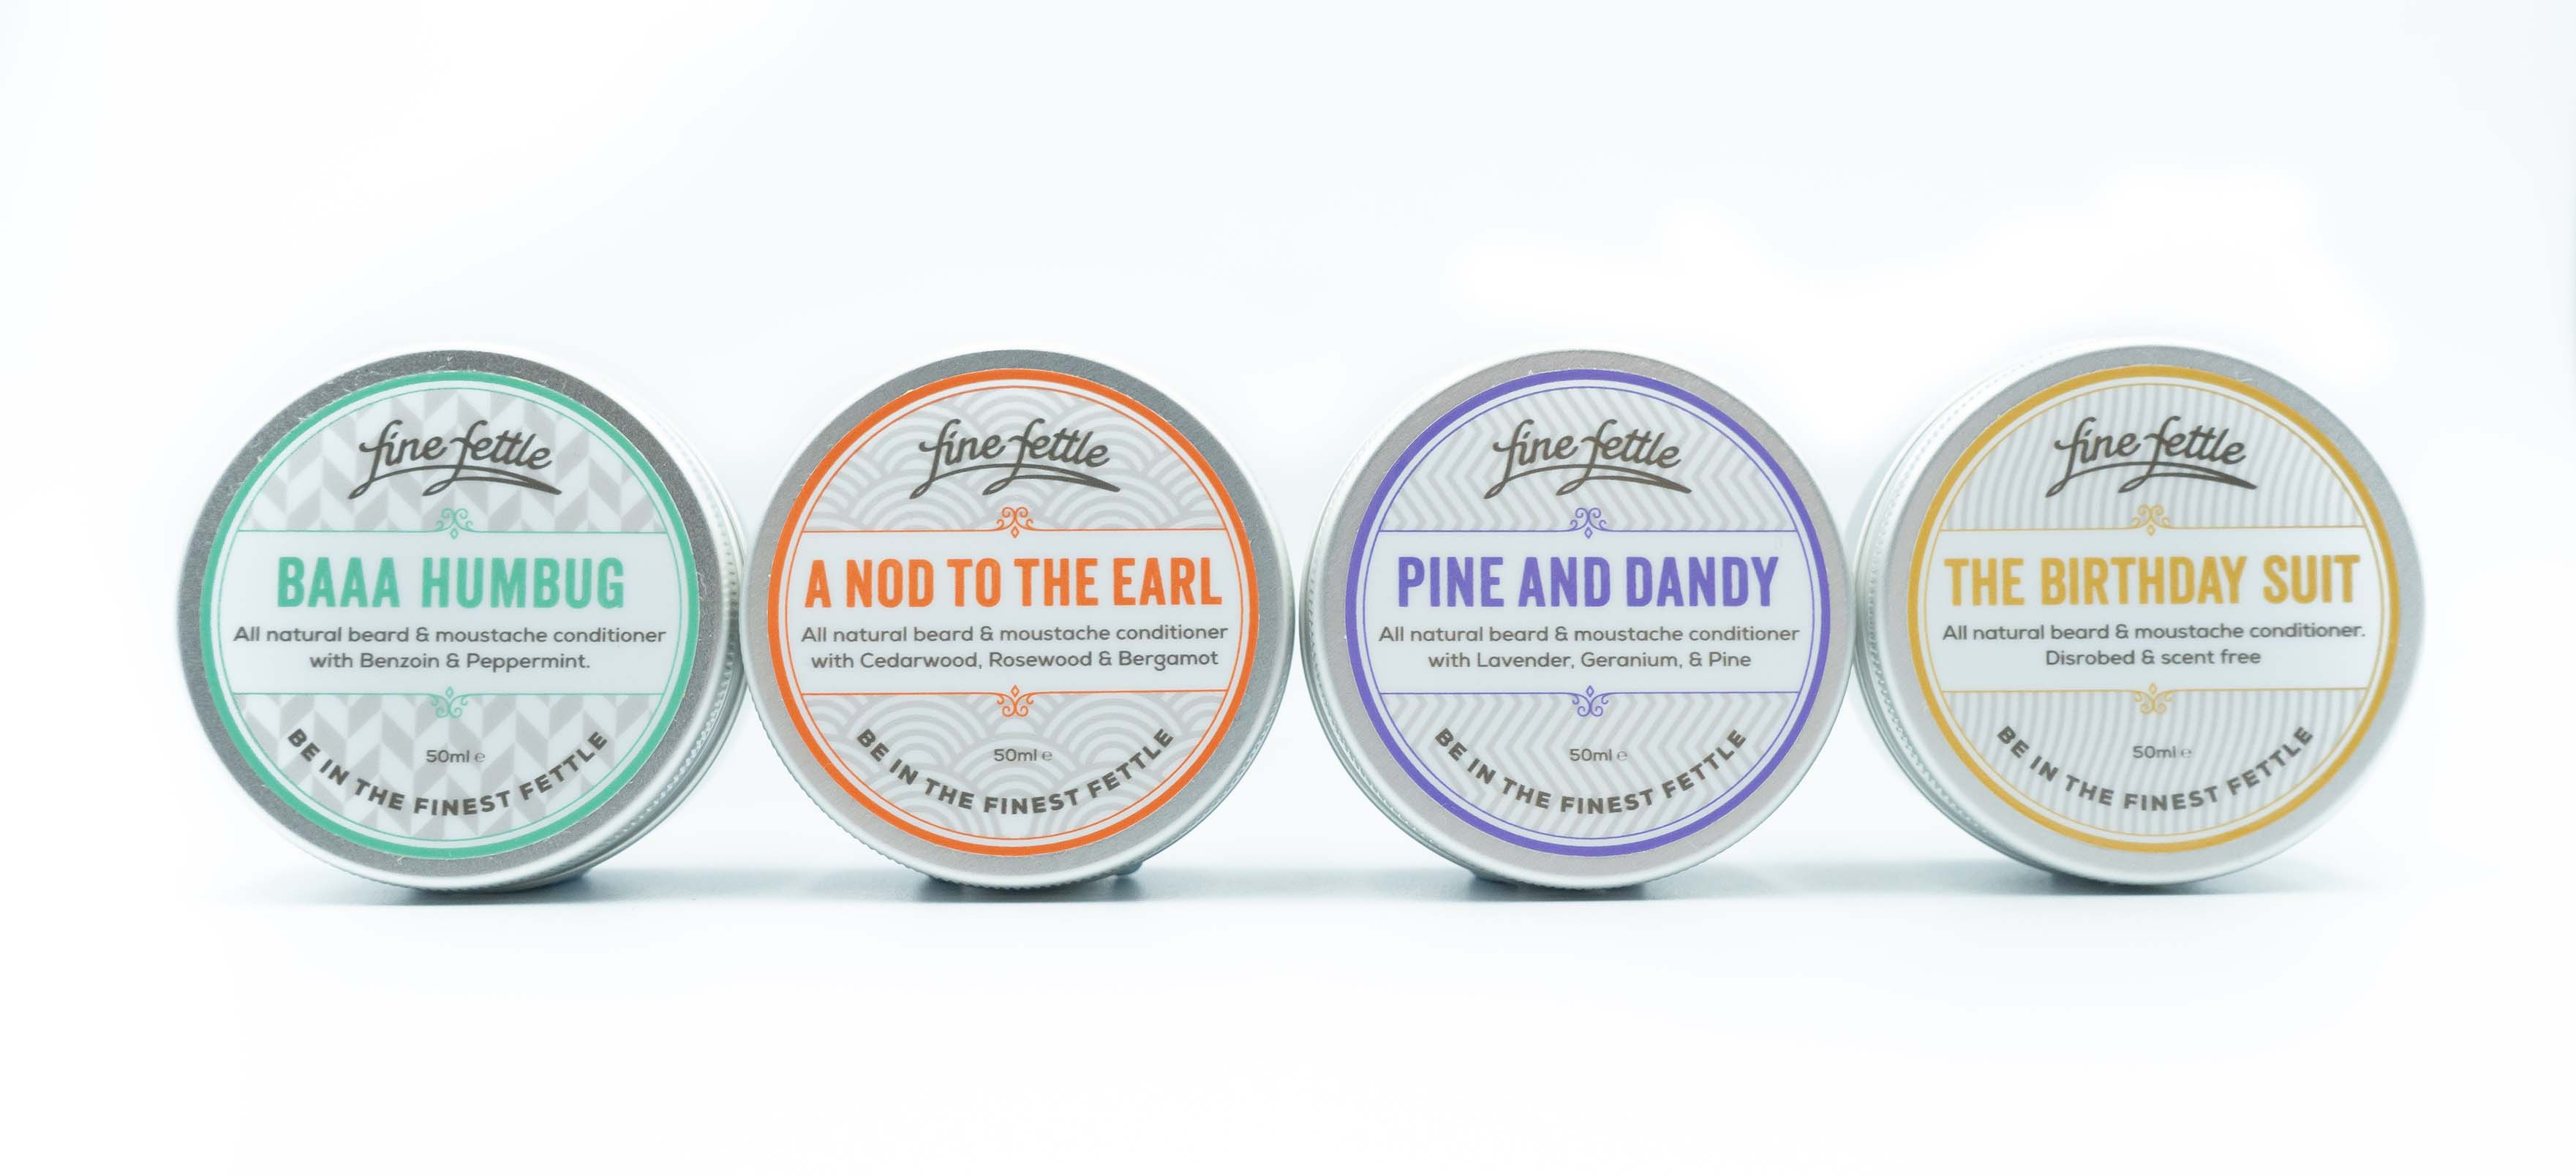 The Fine Fettle Range